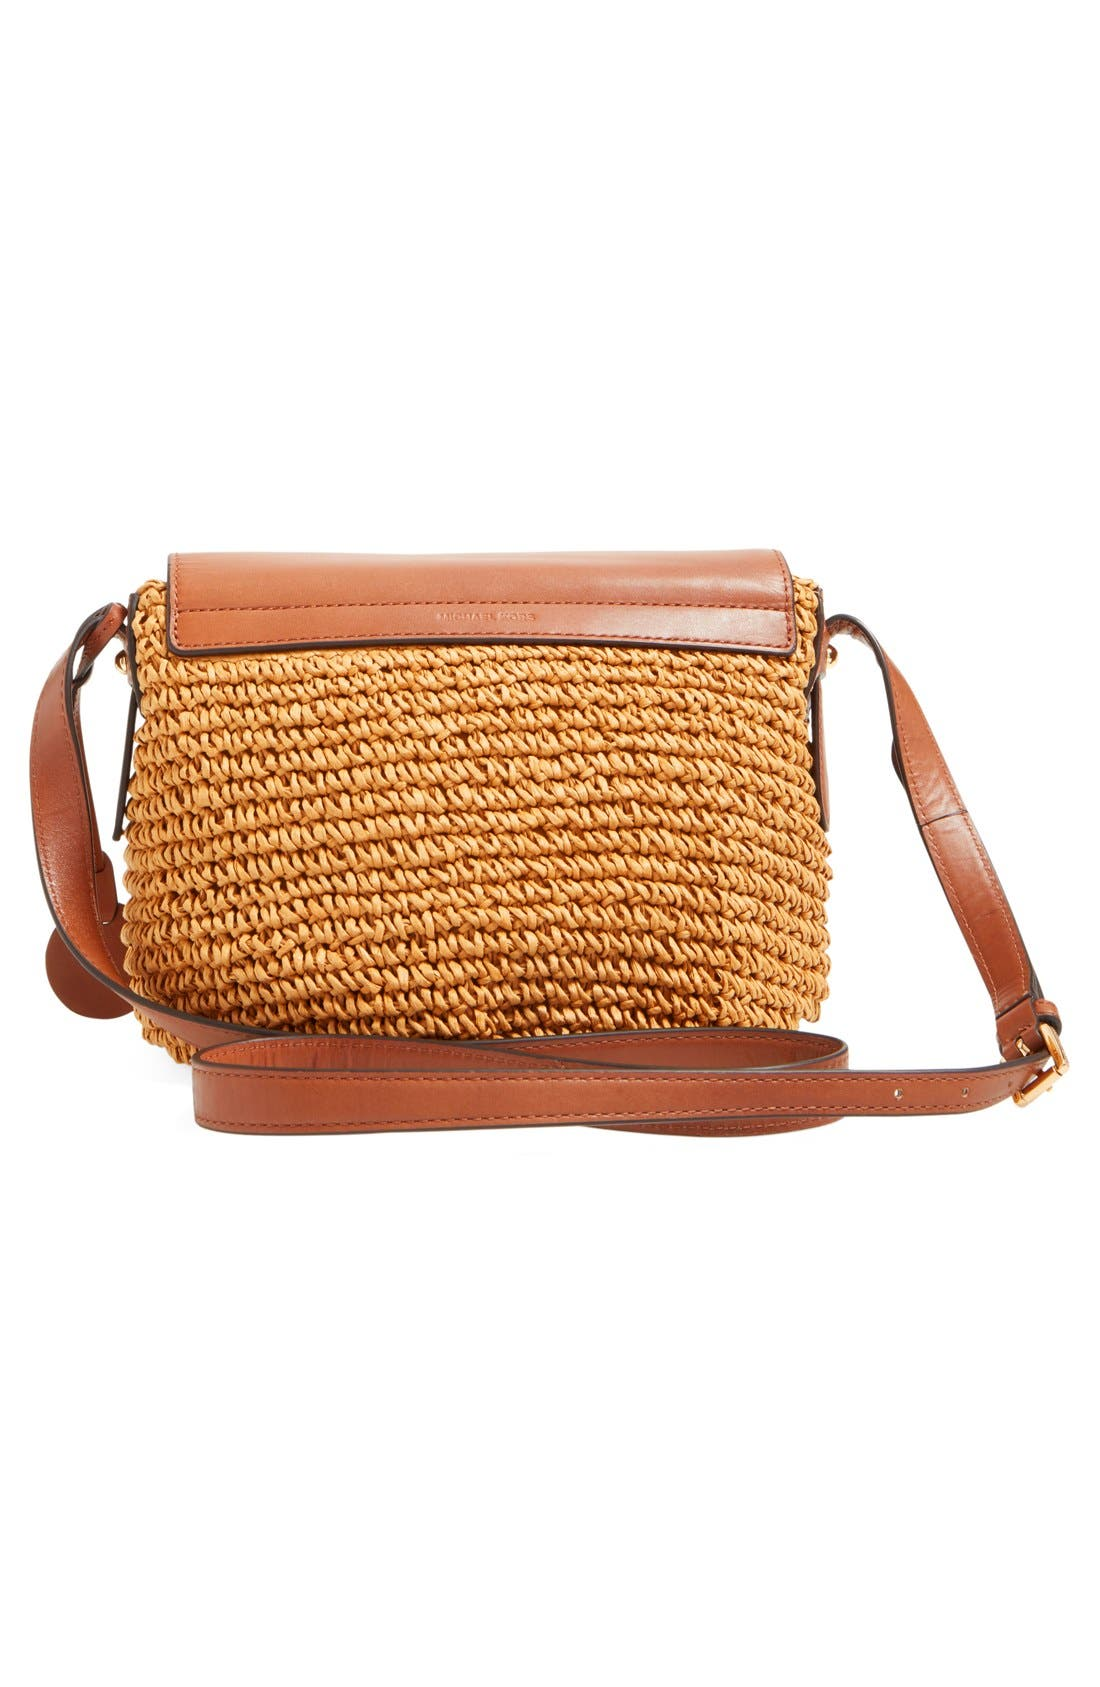 Alternate Image 3  - MICHAEL Michael Kors 'Medium Naomi' Straw & Leather Messenger Bag